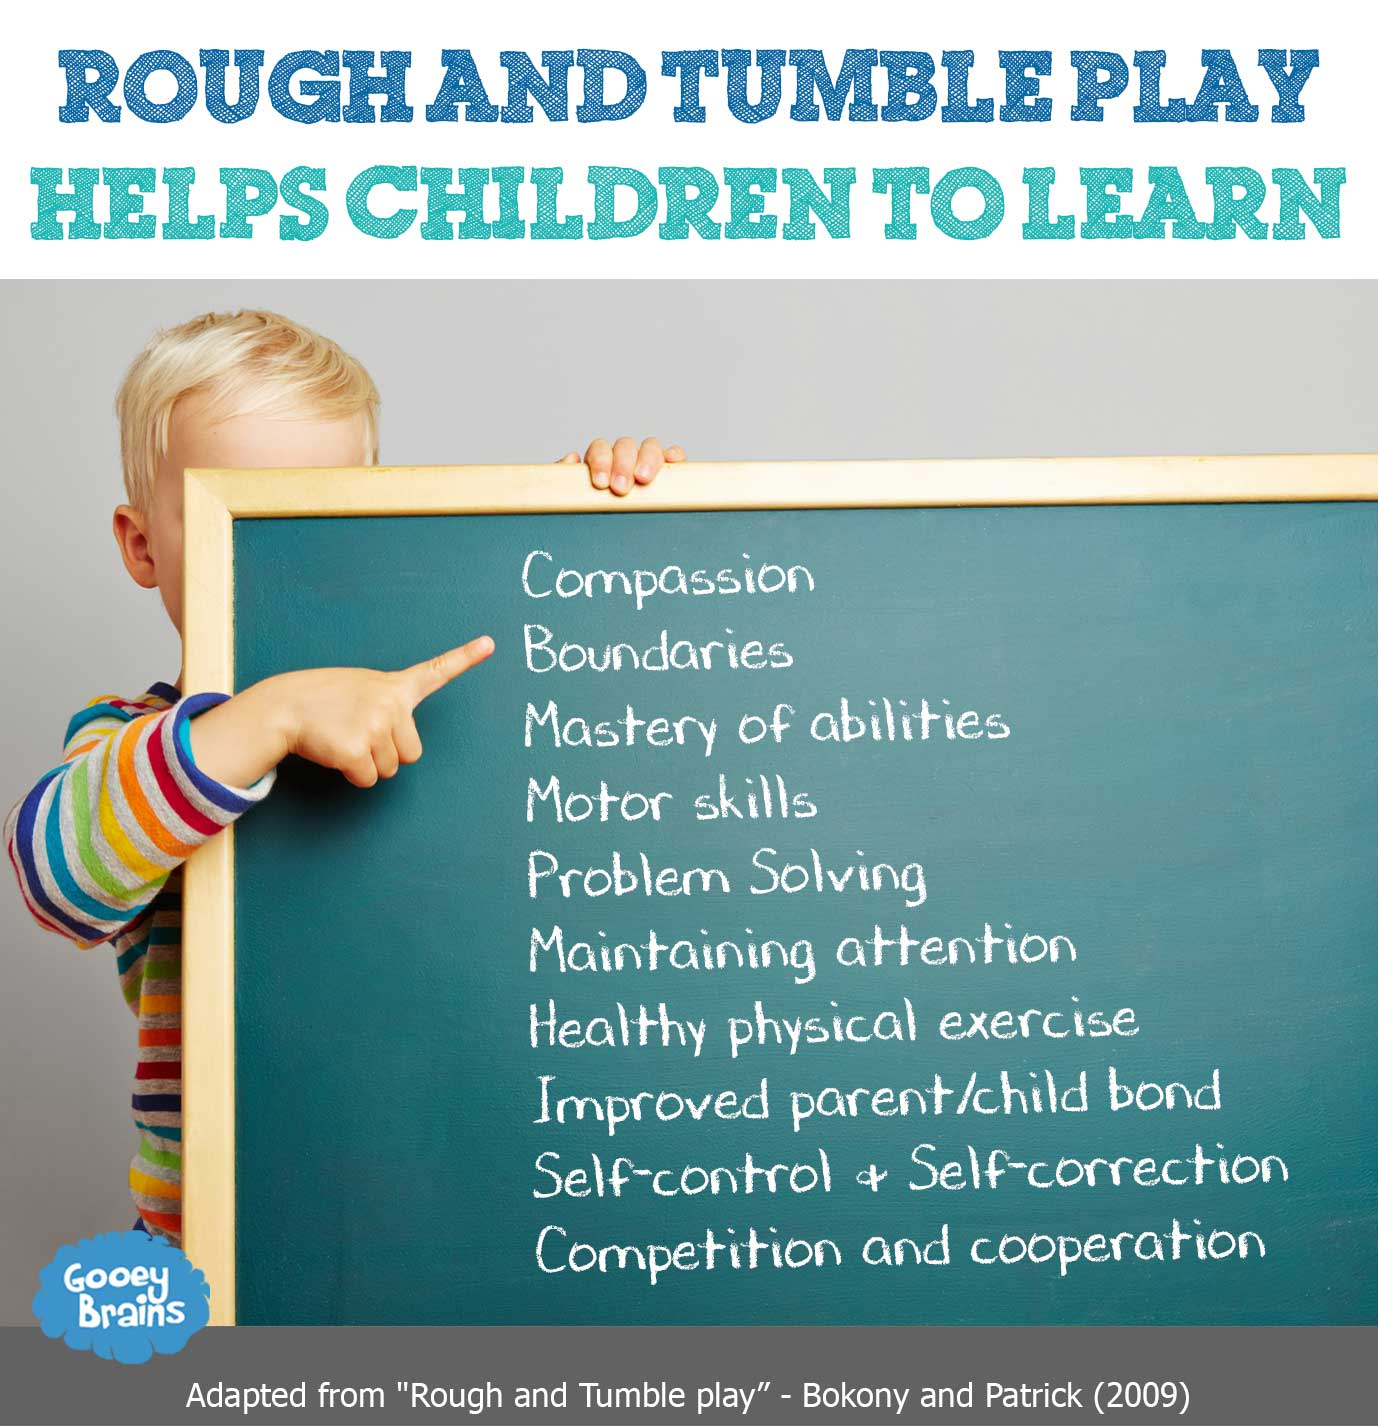 examples of rough and tumble play